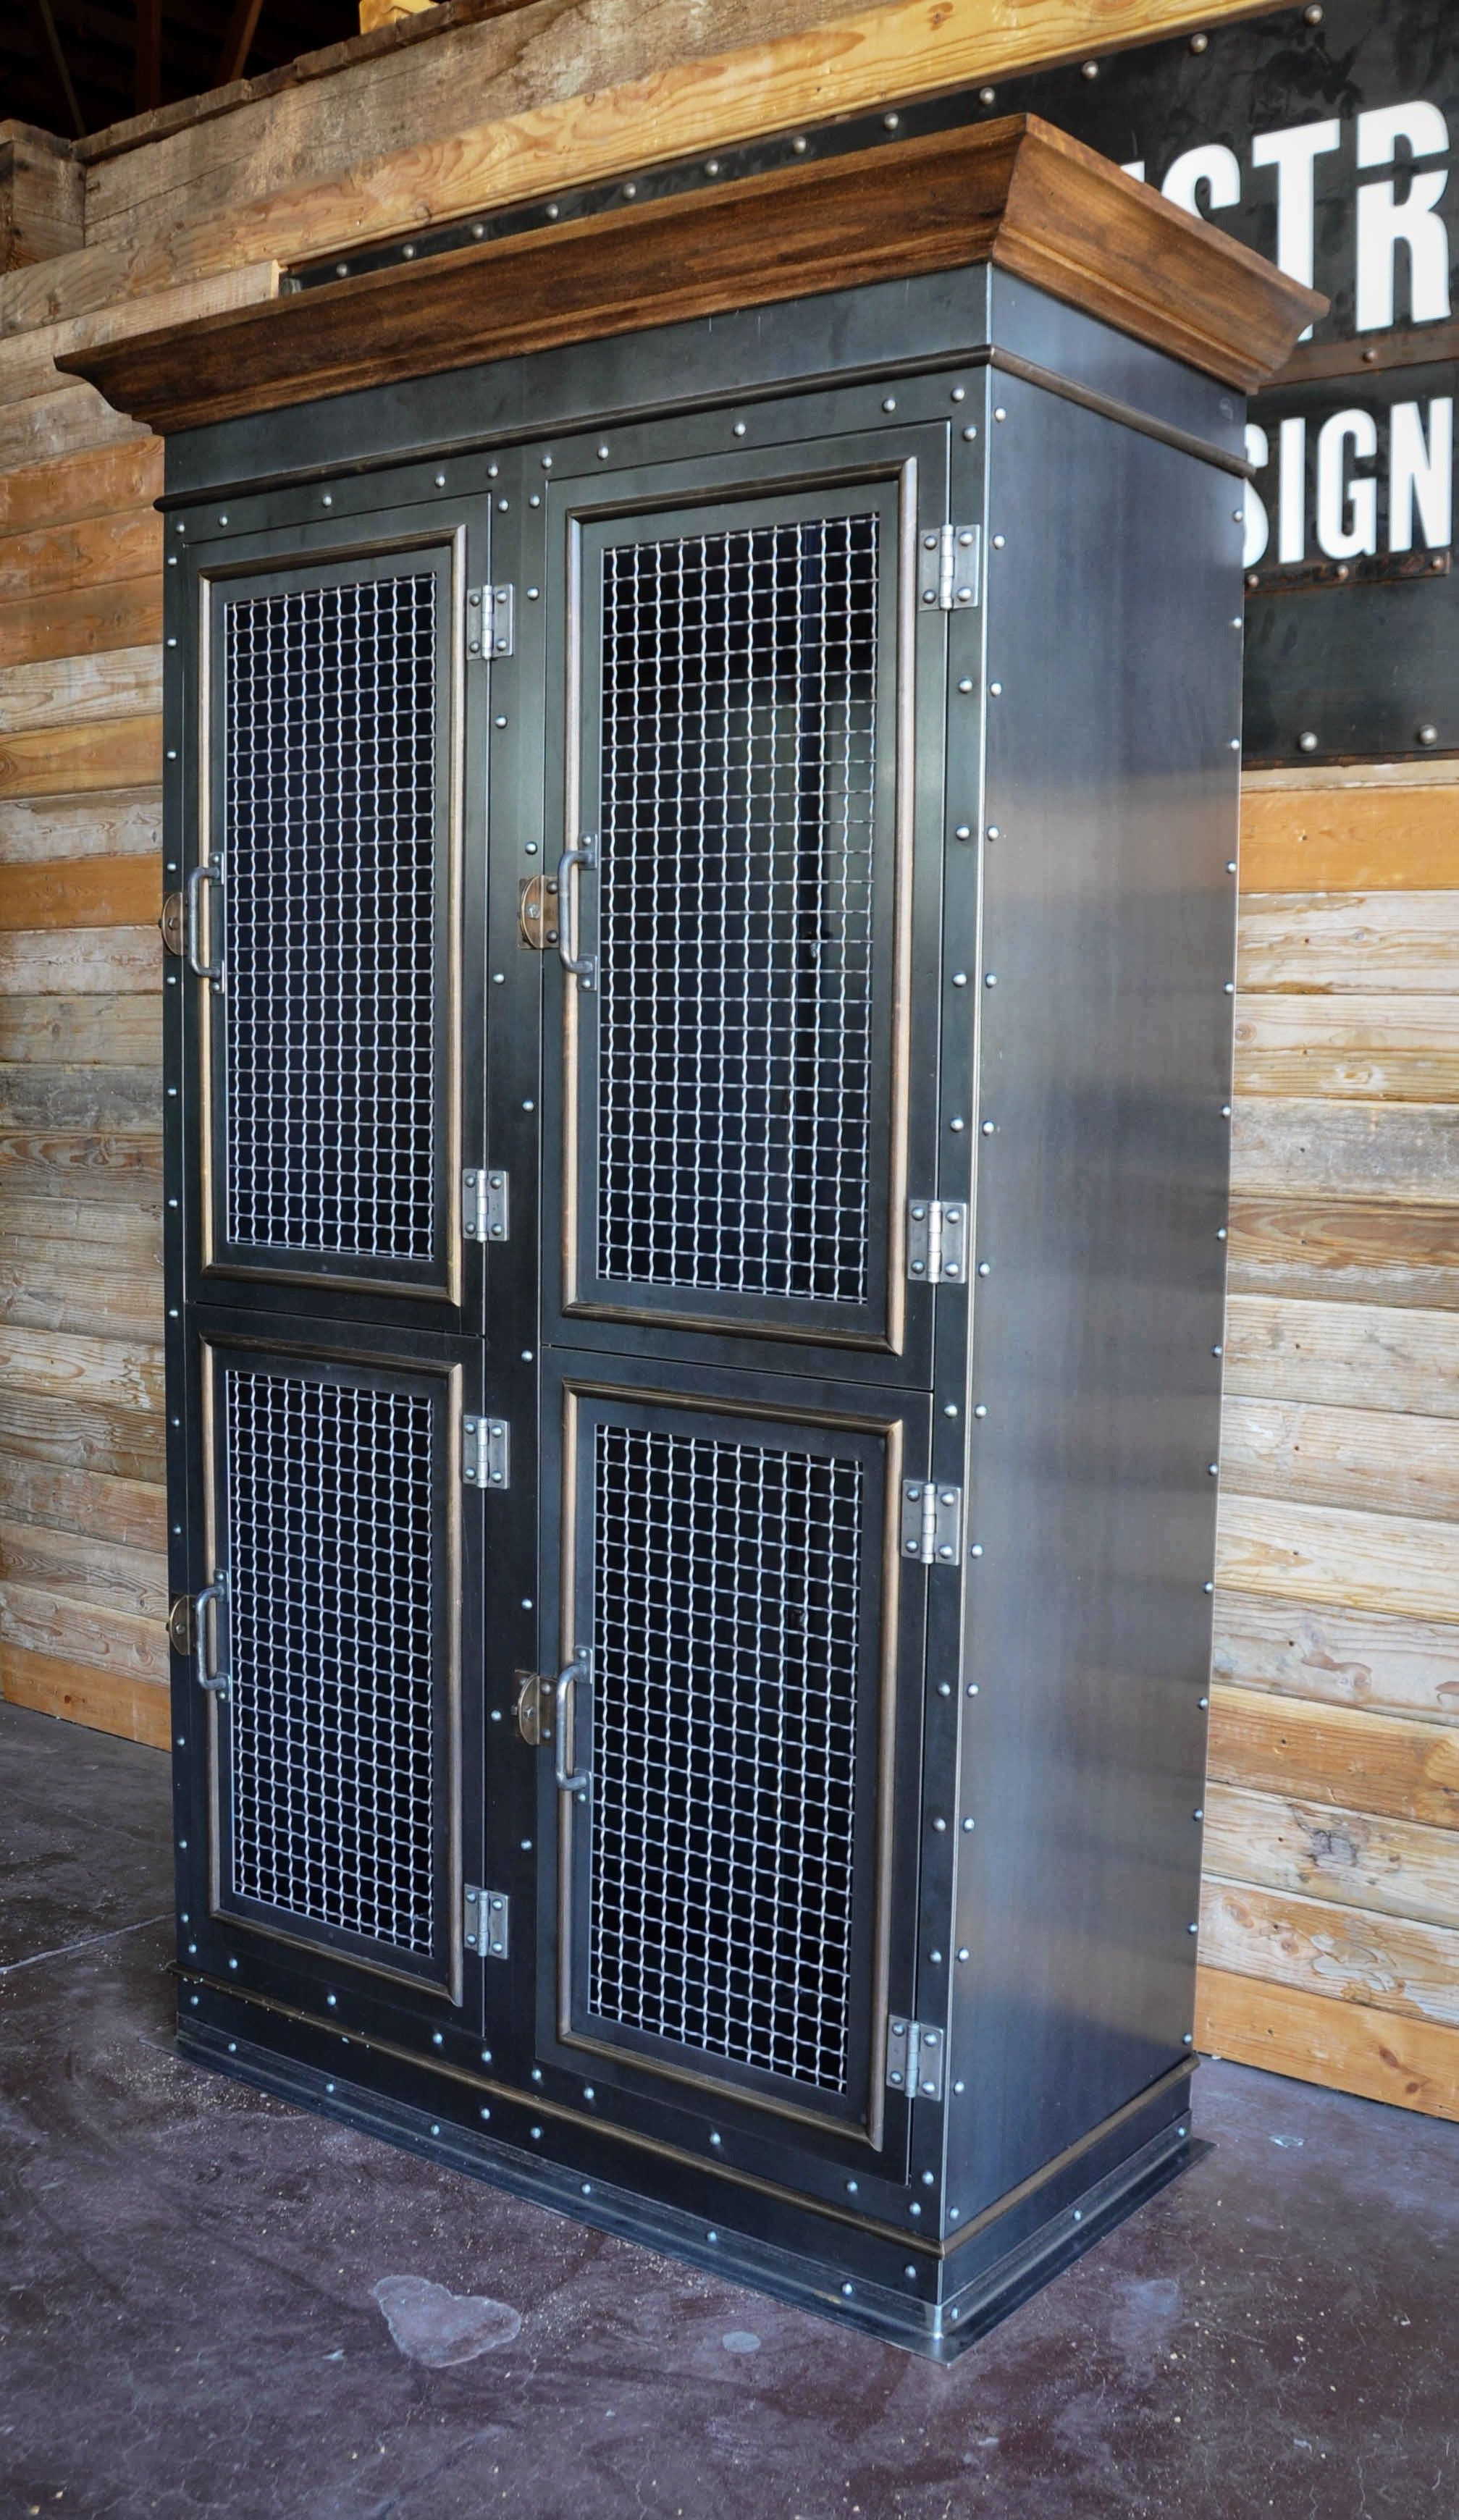 Country Club Modular Locker Vintage Industrial Storage Vintage